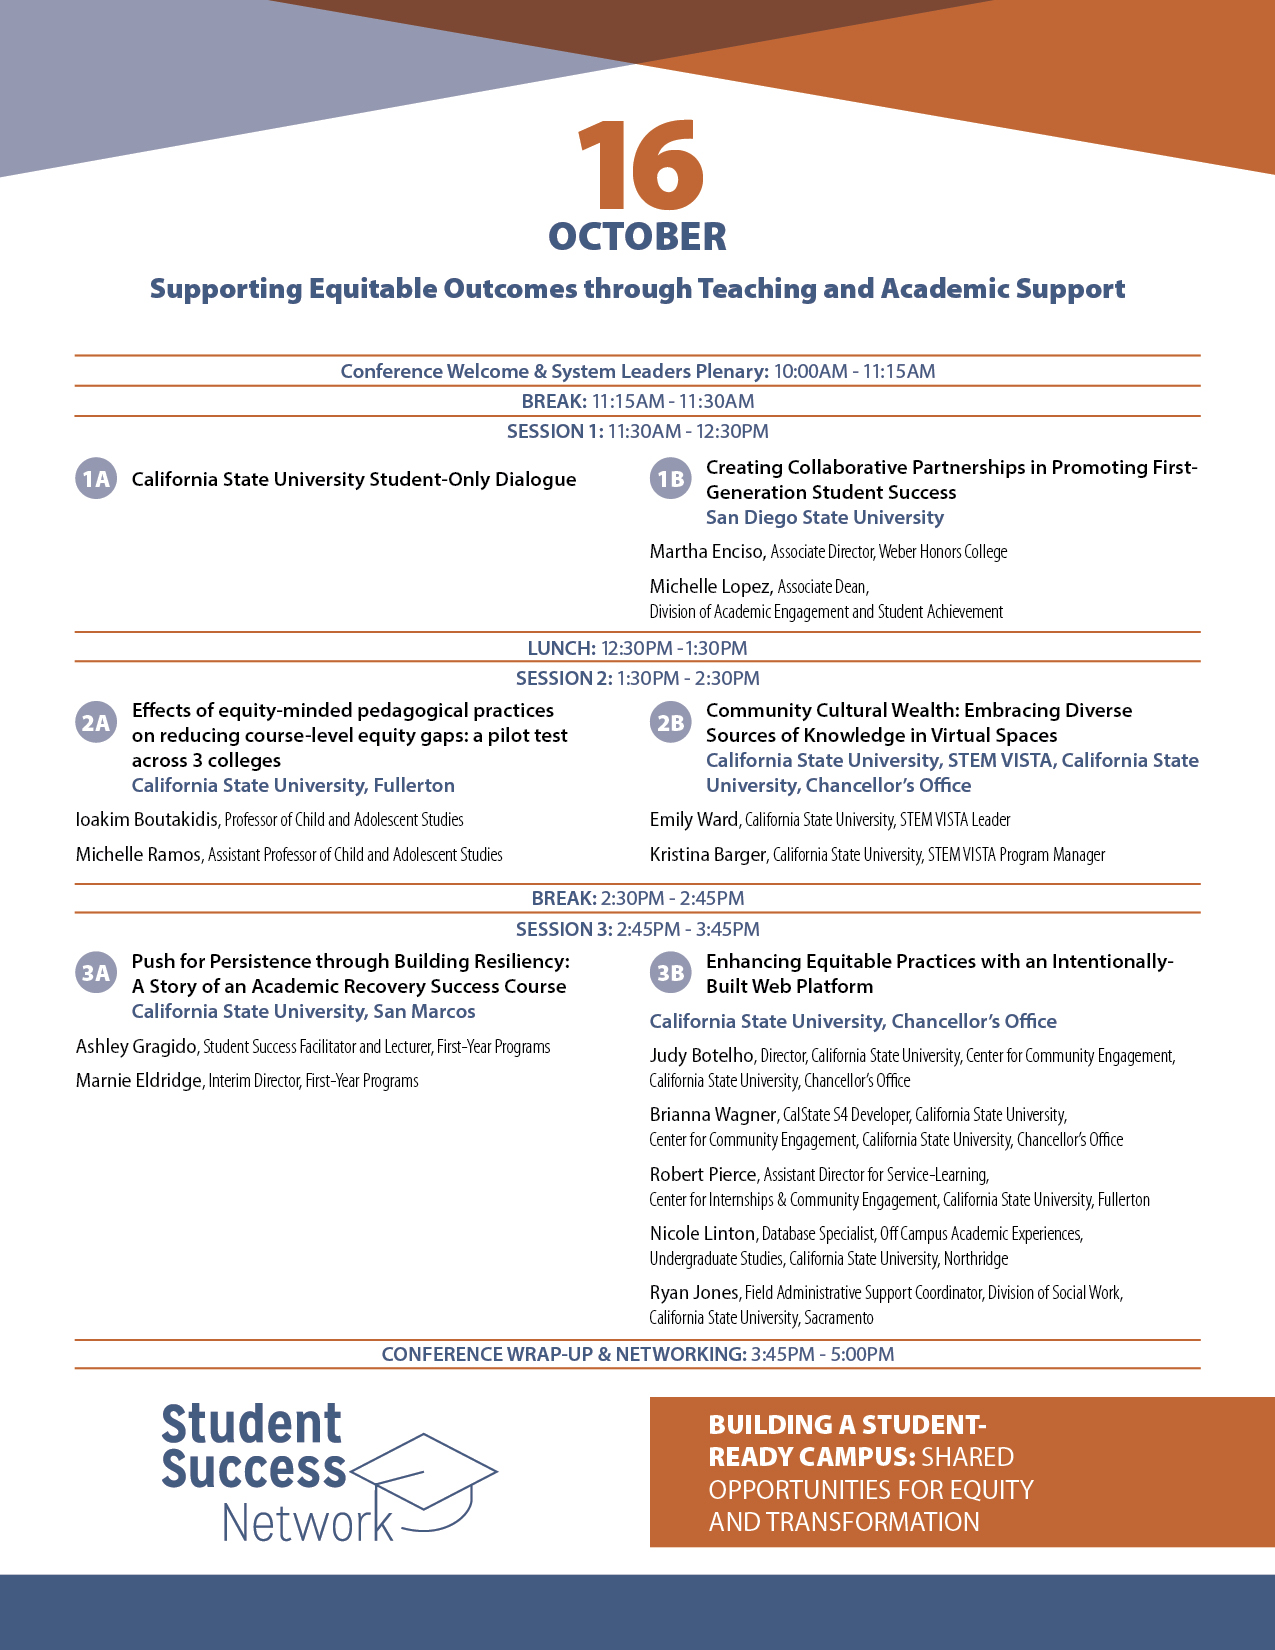 CSU Student Success Network Conference schedule